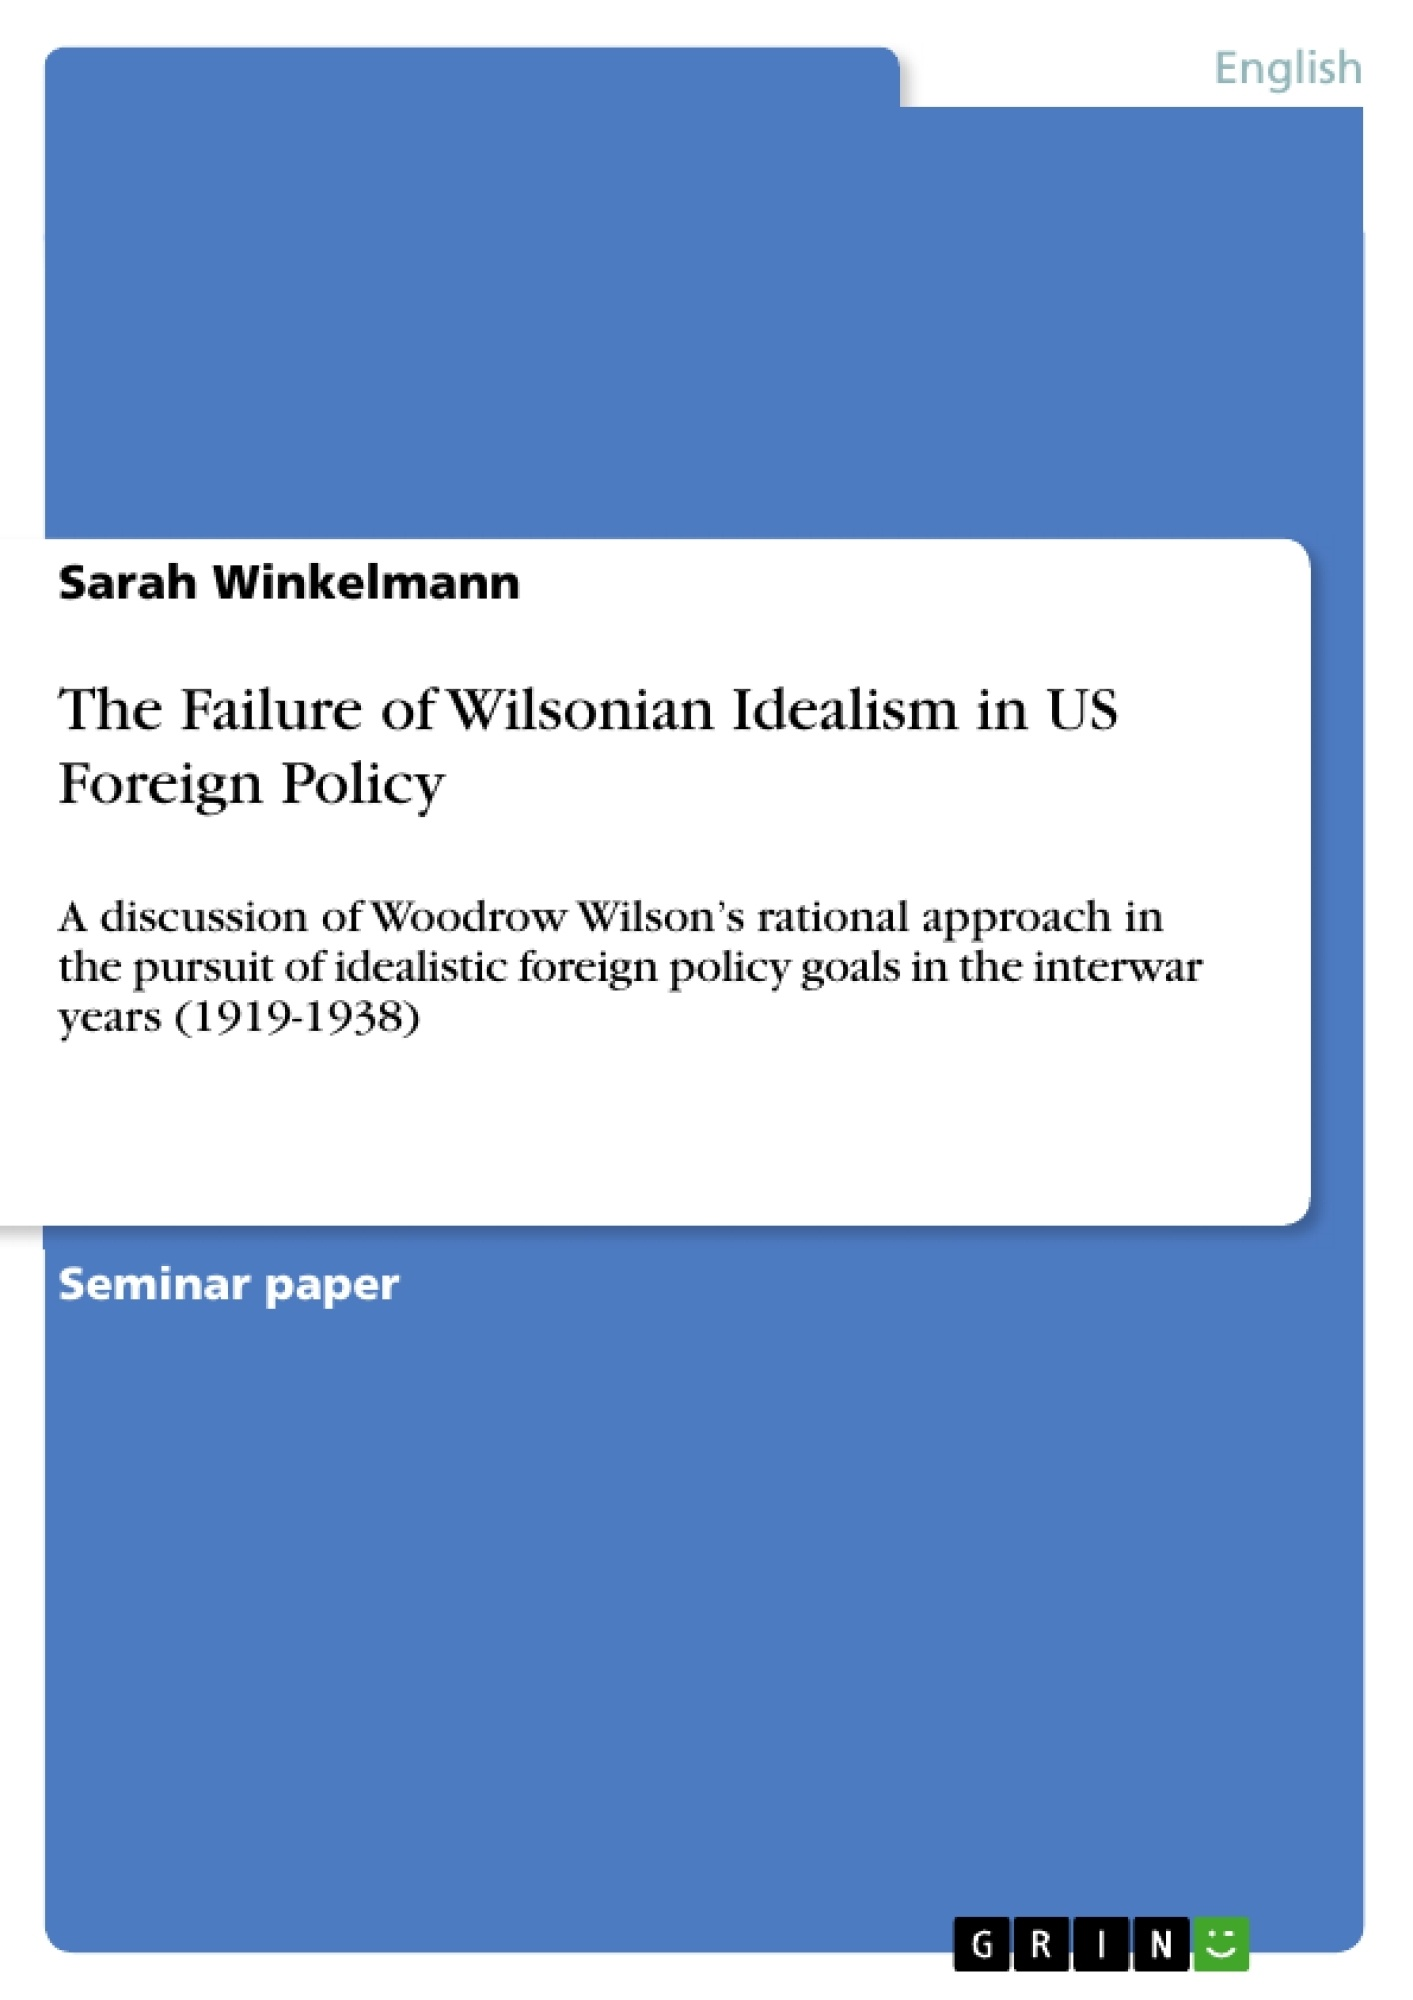 us foreign policy essay the failure of wilsonian idealism in us  the failure of wilsonian idealism in us foreign policy publish the failure of wilsonian idealism in essay contest